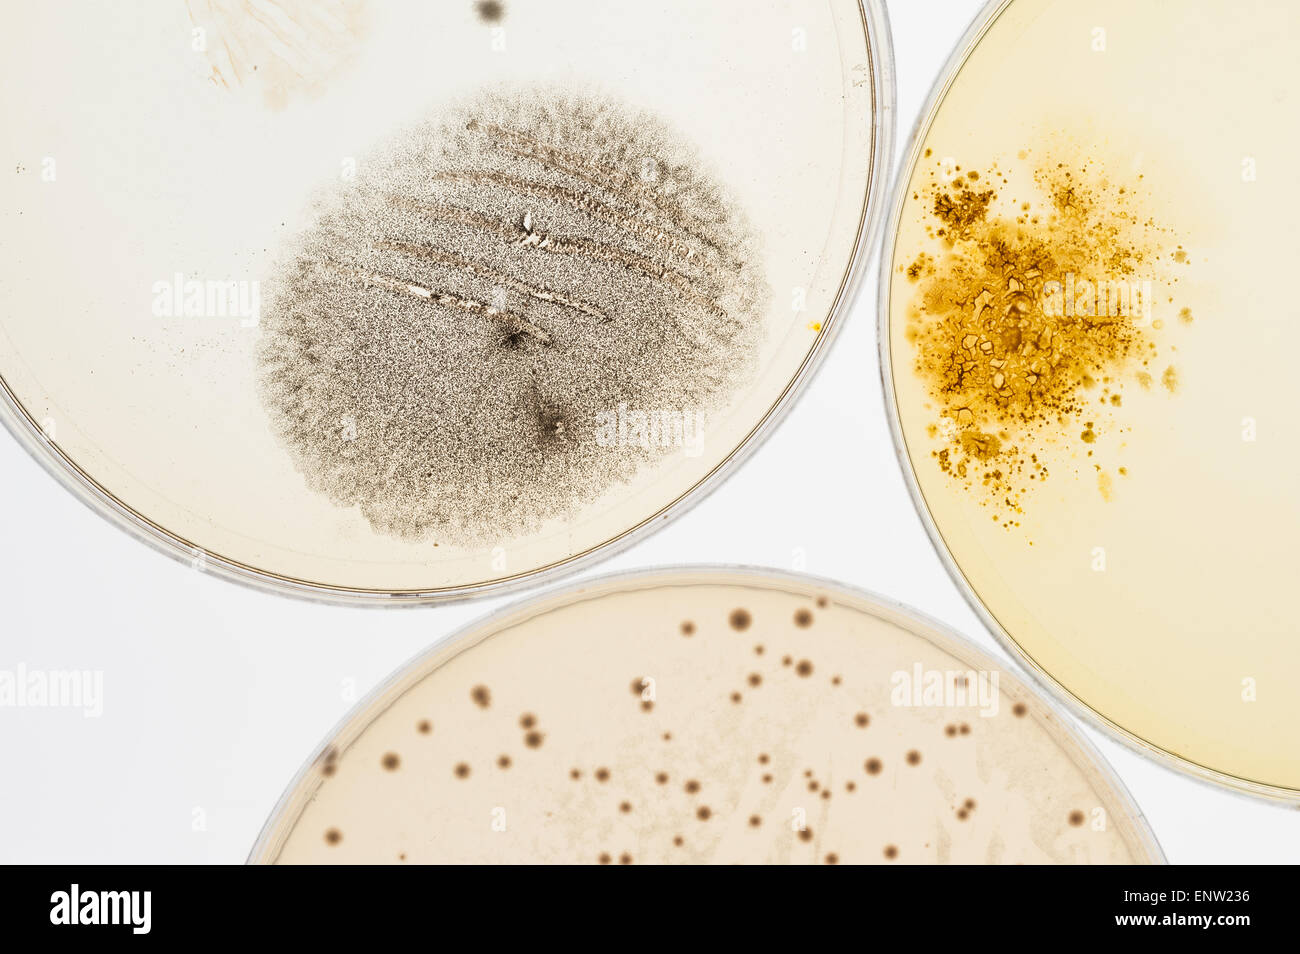 selection of microbes fungi bacteria cultures on agar in petri dishes with indicator showing ph change and spores - Stock Image